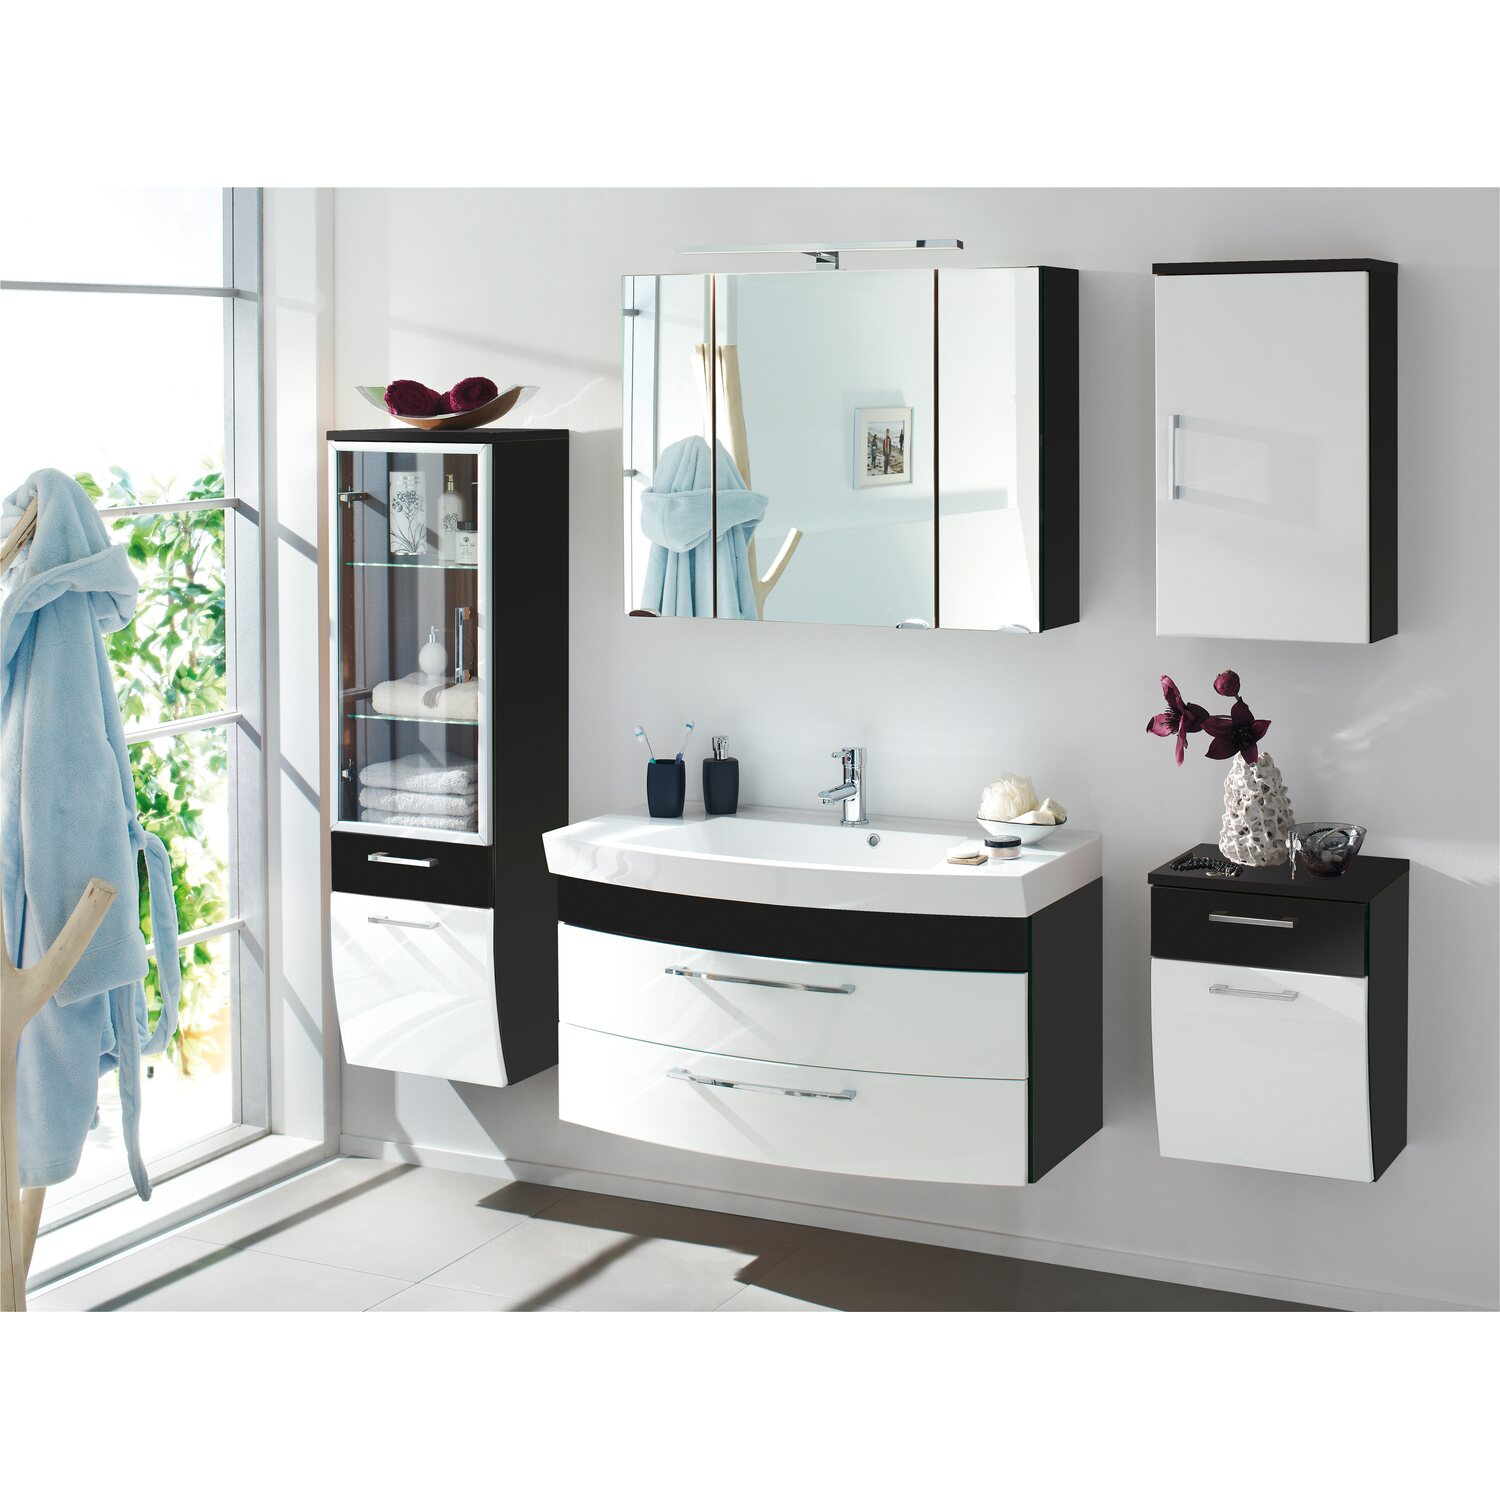 posseik badm bel set rima anthrazit wei 3 teilig eek a kaufen bei obi. Black Bedroom Furniture Sets. Home Design Ideas